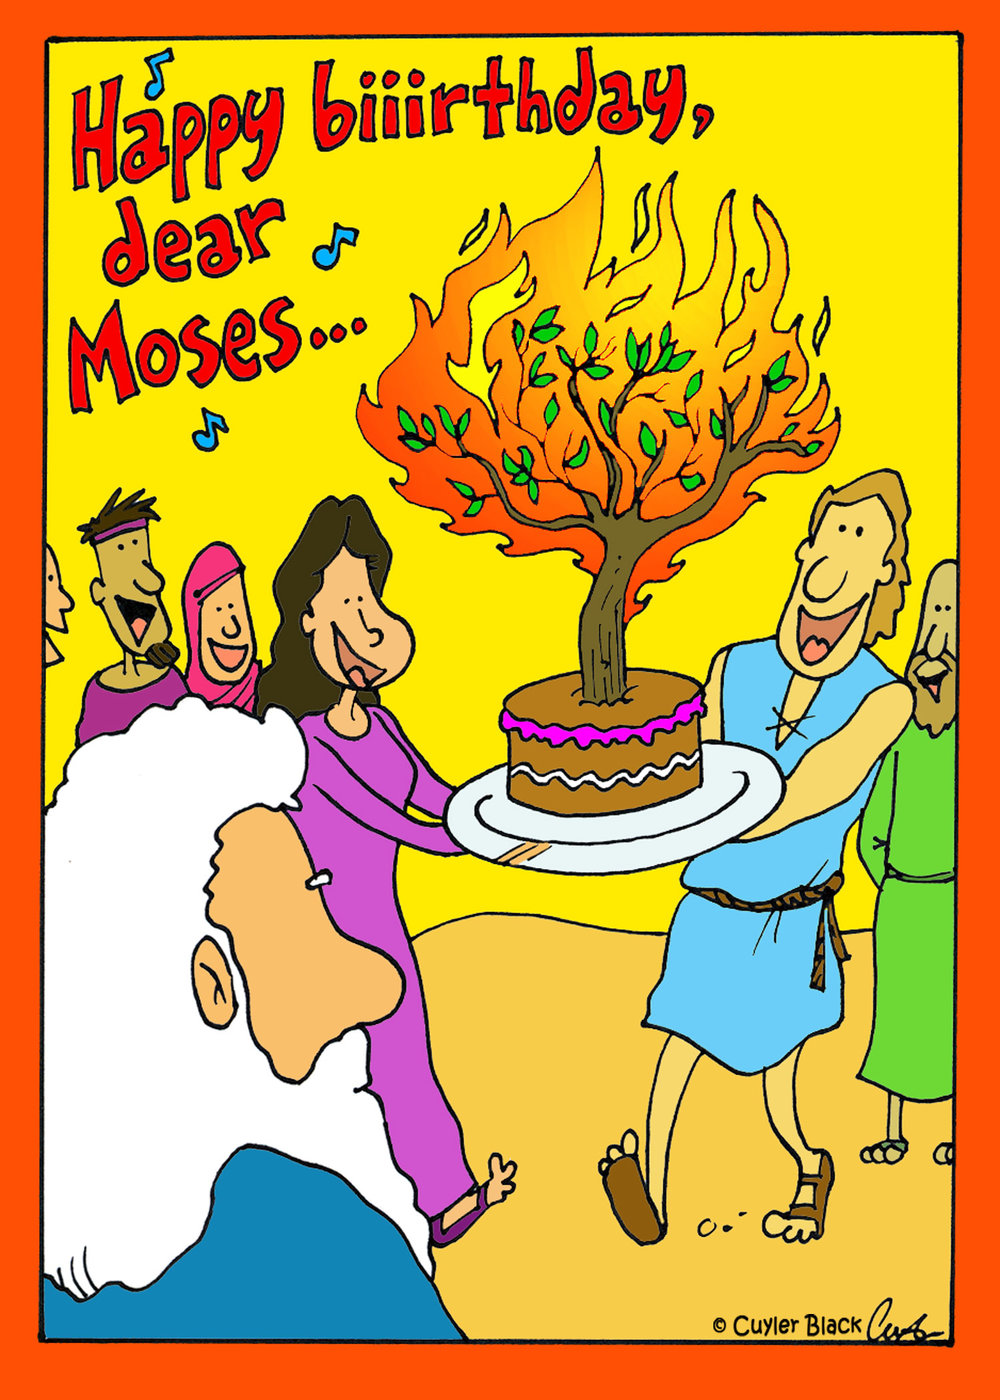 Moses' birthday.jpg